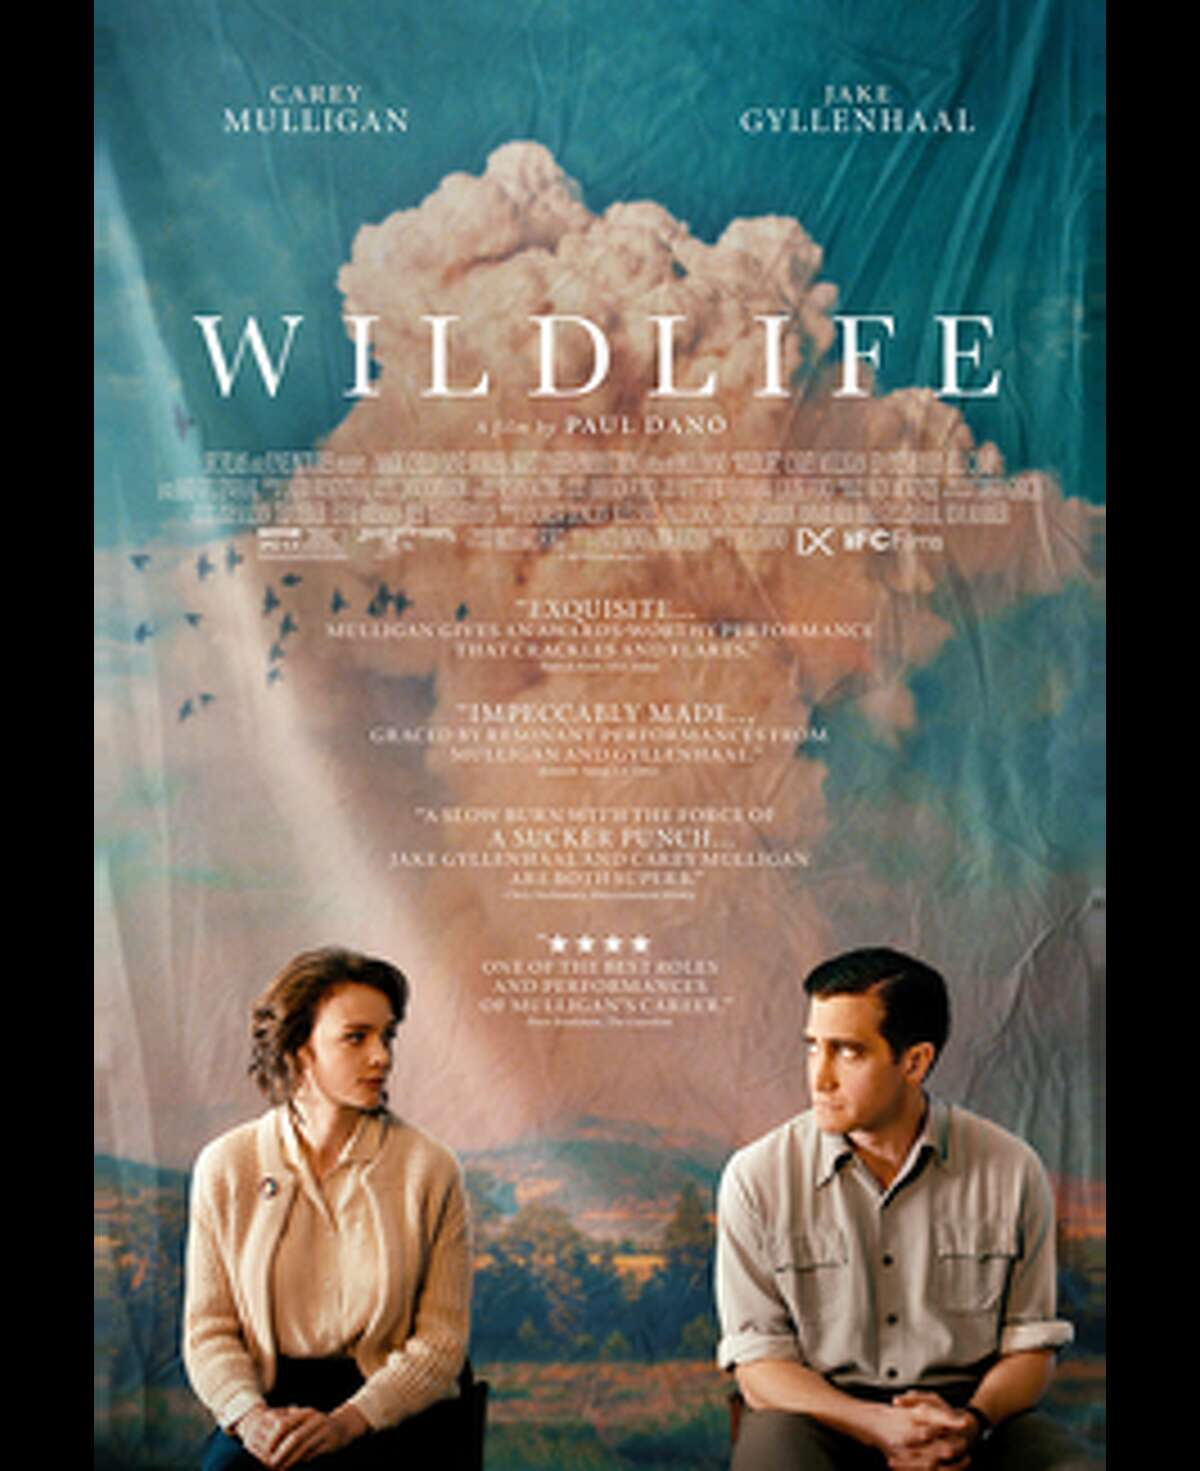 Wildlife, starring Jake Gyllenhaal Carey Mulligan, will kick off the Ridgefield Independent Film Festival Thursday, Oct. 18. Director Paul Dano is a graduate of Wilton High School.